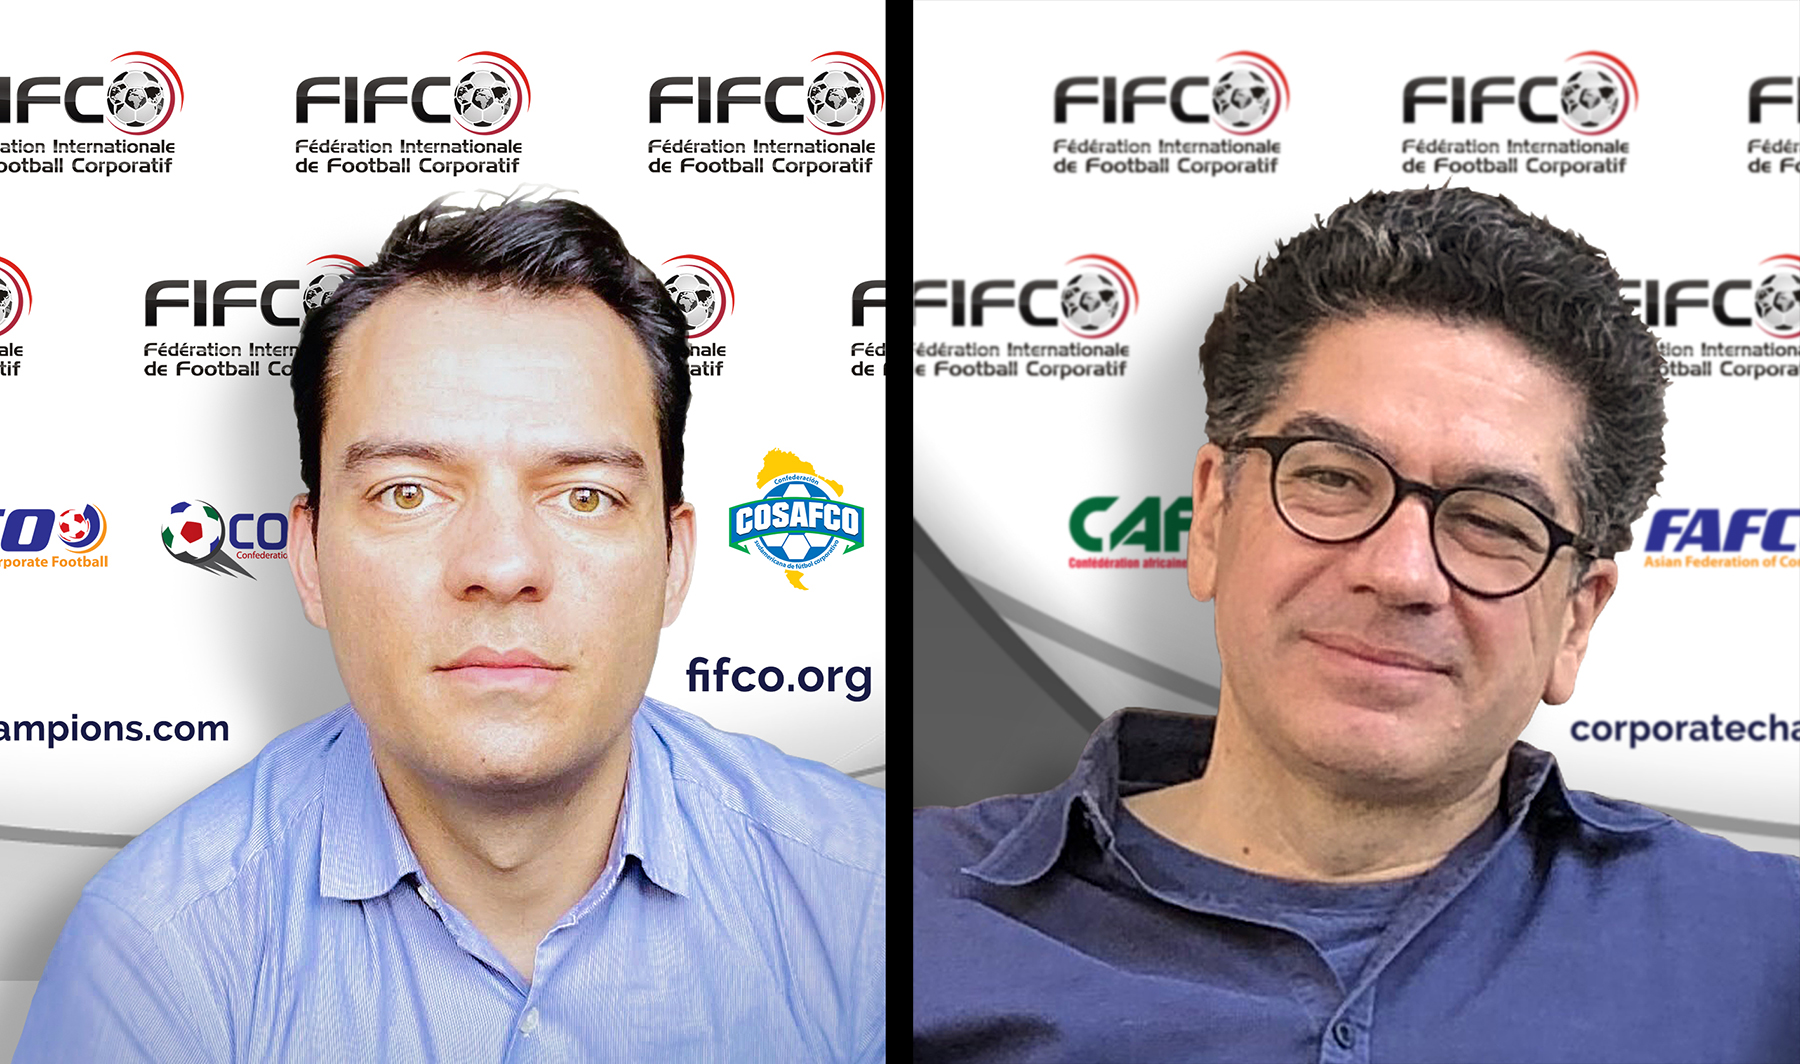 FIFCO Announces two important appointments